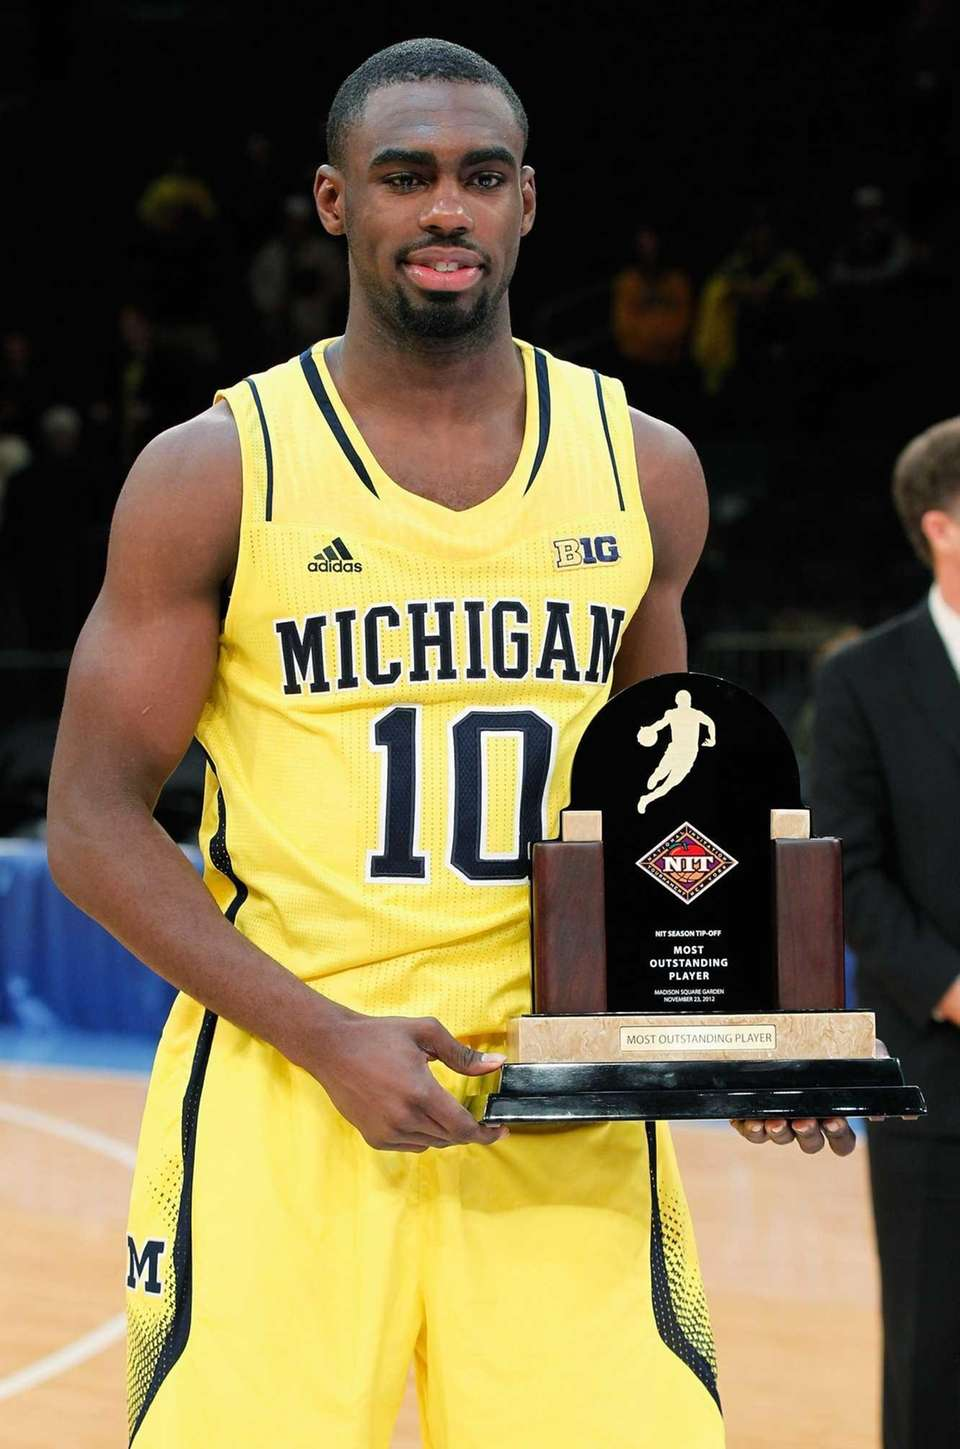 Tim Hardaway Jr. of the Michigan Wolverines poses